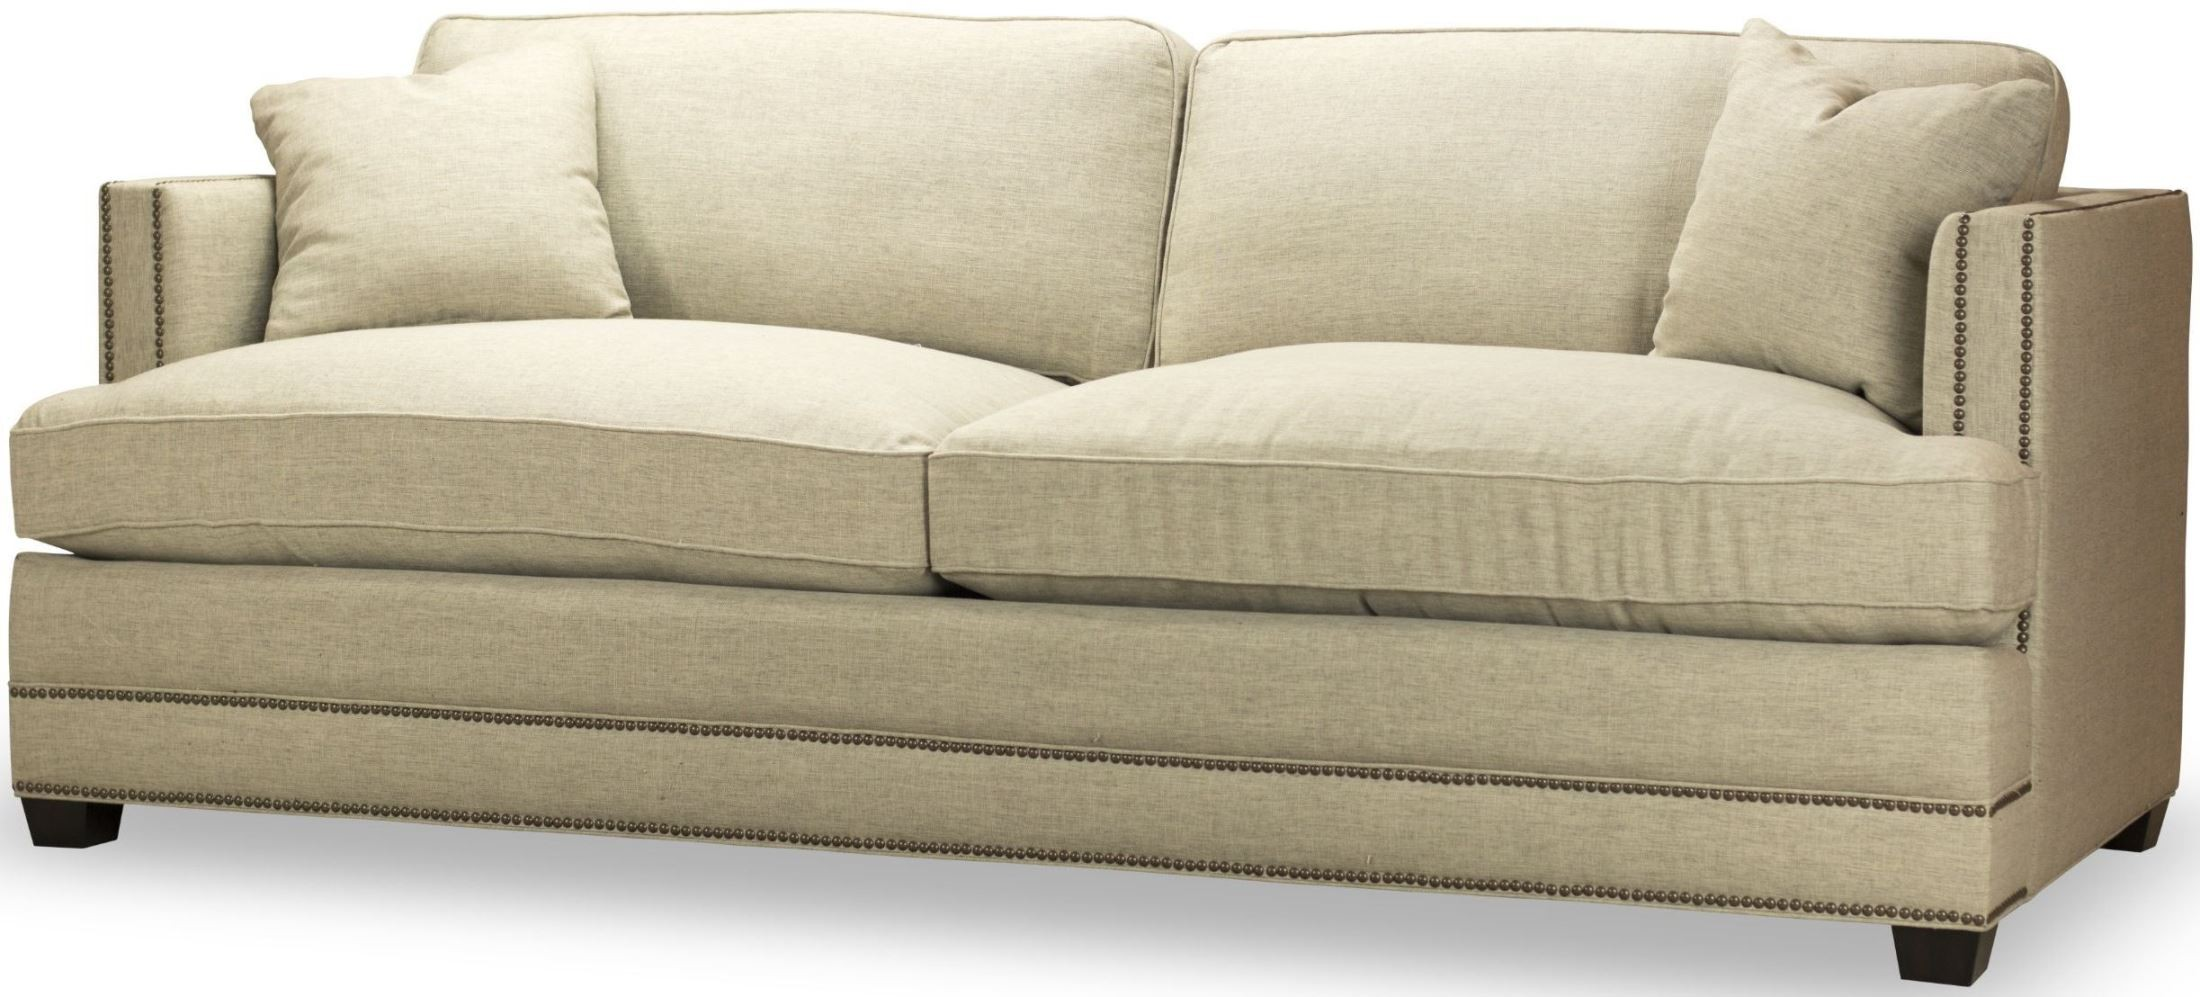 Sofa 999 Markham Markham Milford Wheat Sofa From Spectra Home Coleman